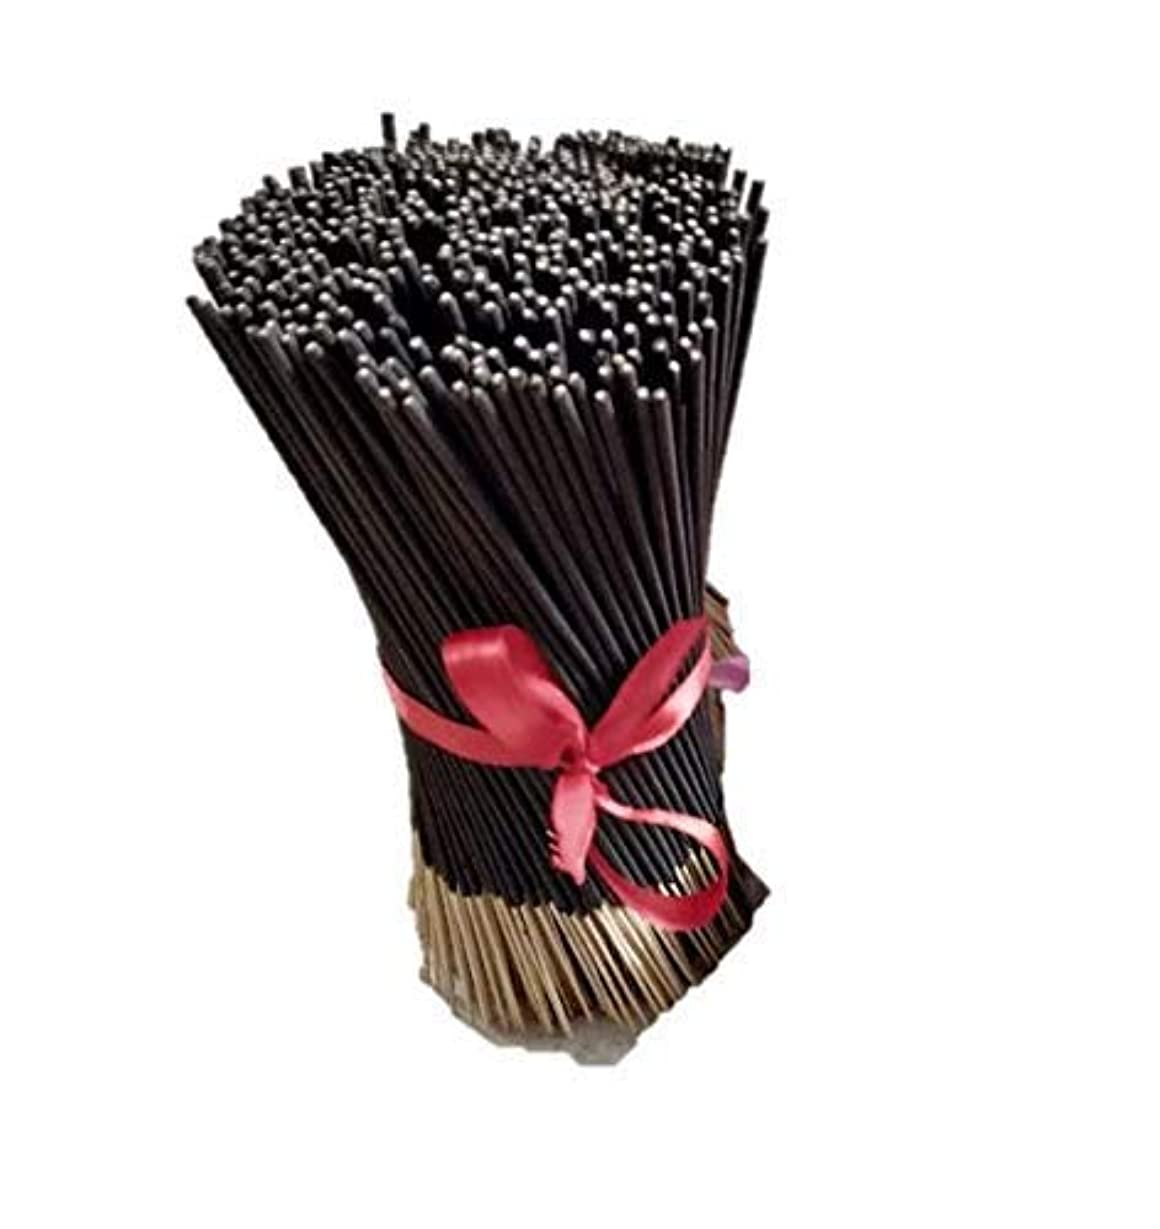 自己血まみれの滴下Aroma Natural Products Raw Charcoal Incense Stick 1 Kilograms